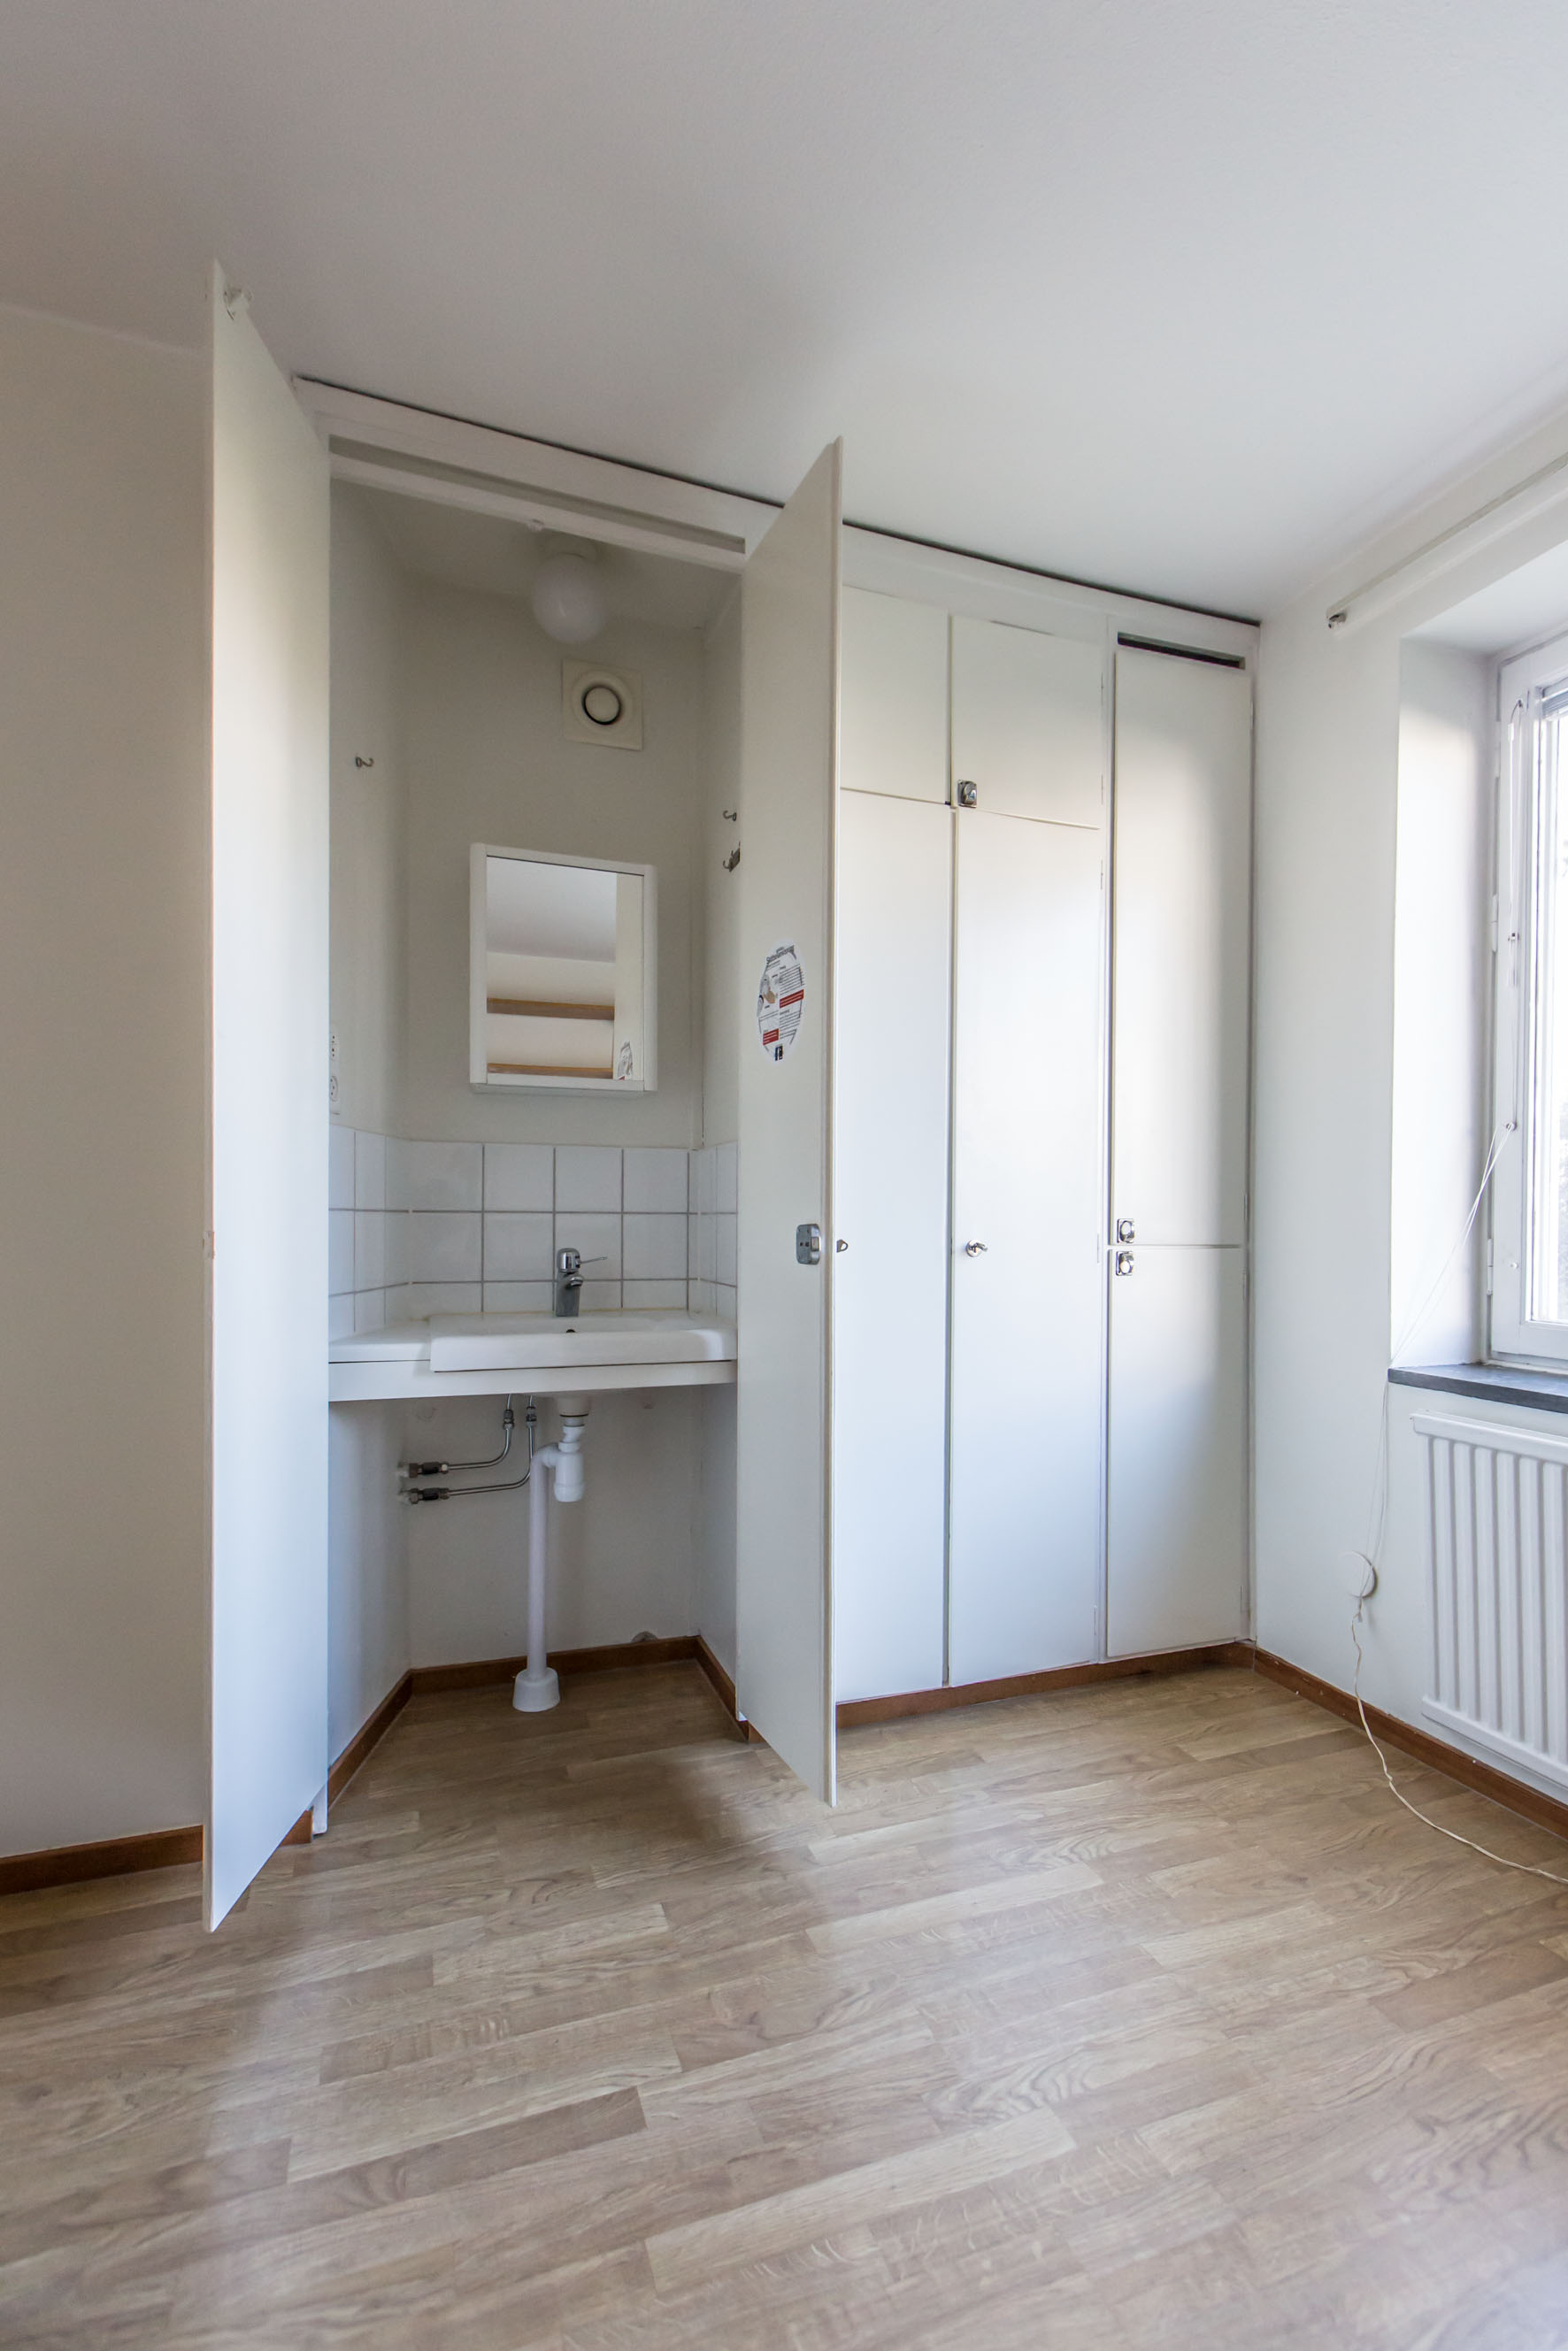 Student Living Room Decor: Rackarbergsgatan, Student Room With Private Sink